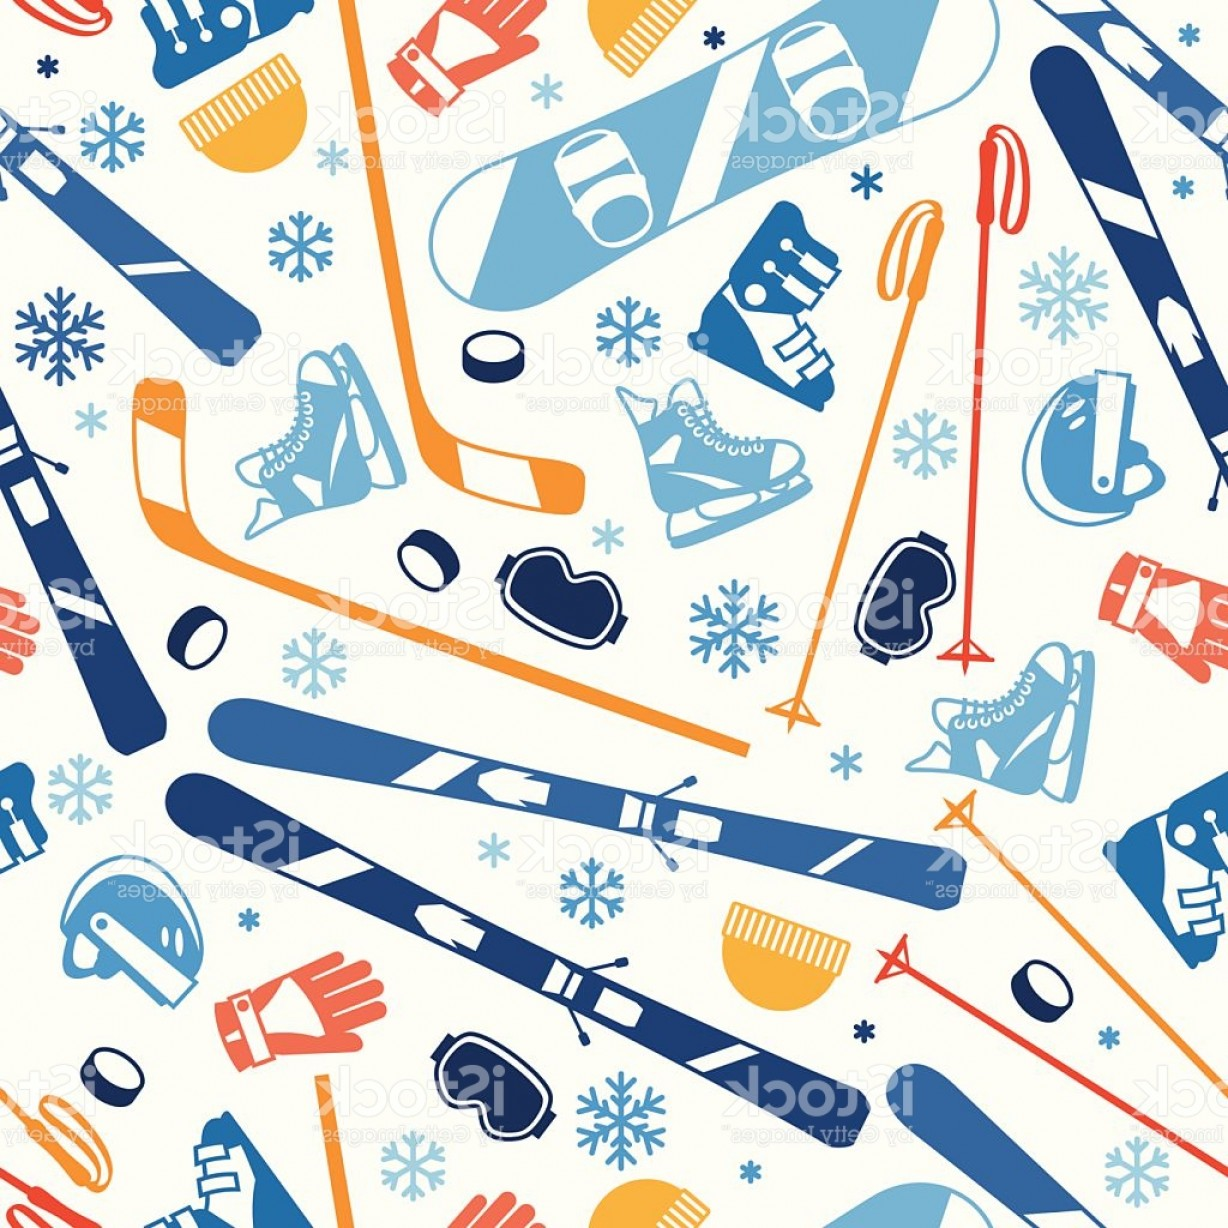 Hockey Vector Patterns: Winter Sports Seamless Pattern With Equipment Flat Icons Gm